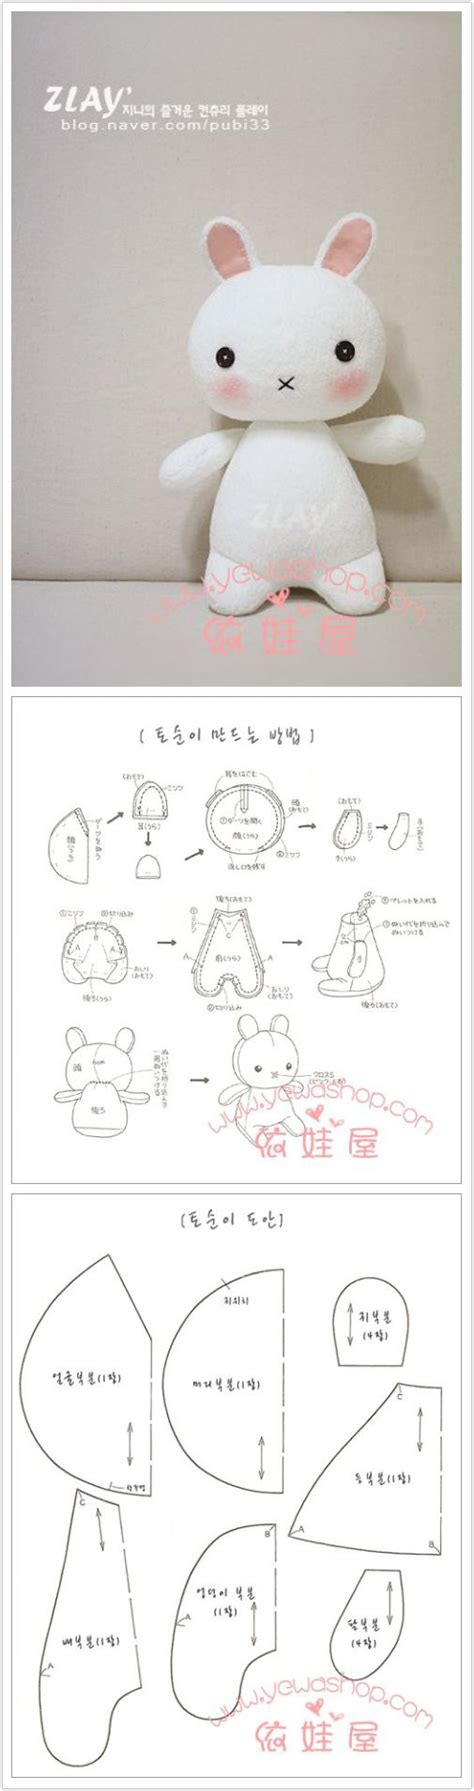 diy cute felt doll free sewing pattern and step by step how to sew cute stuff bunny step by step diy tutorial